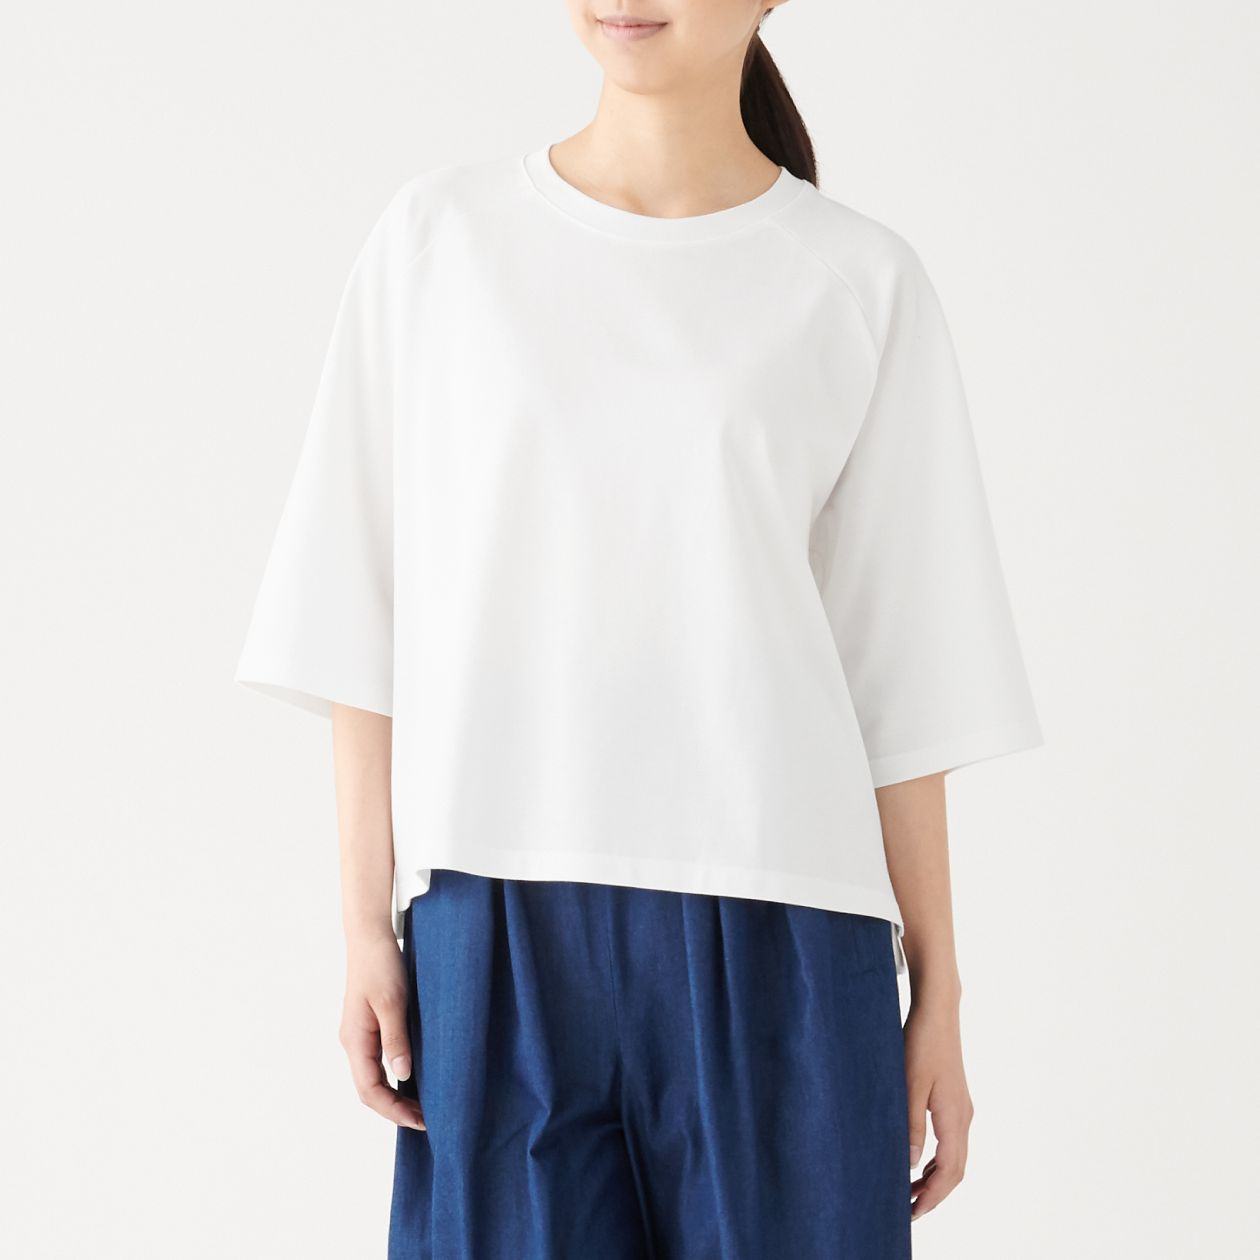 XINJIANG COTTON PIQUE 3/4 SLEEVE T-SHIRT